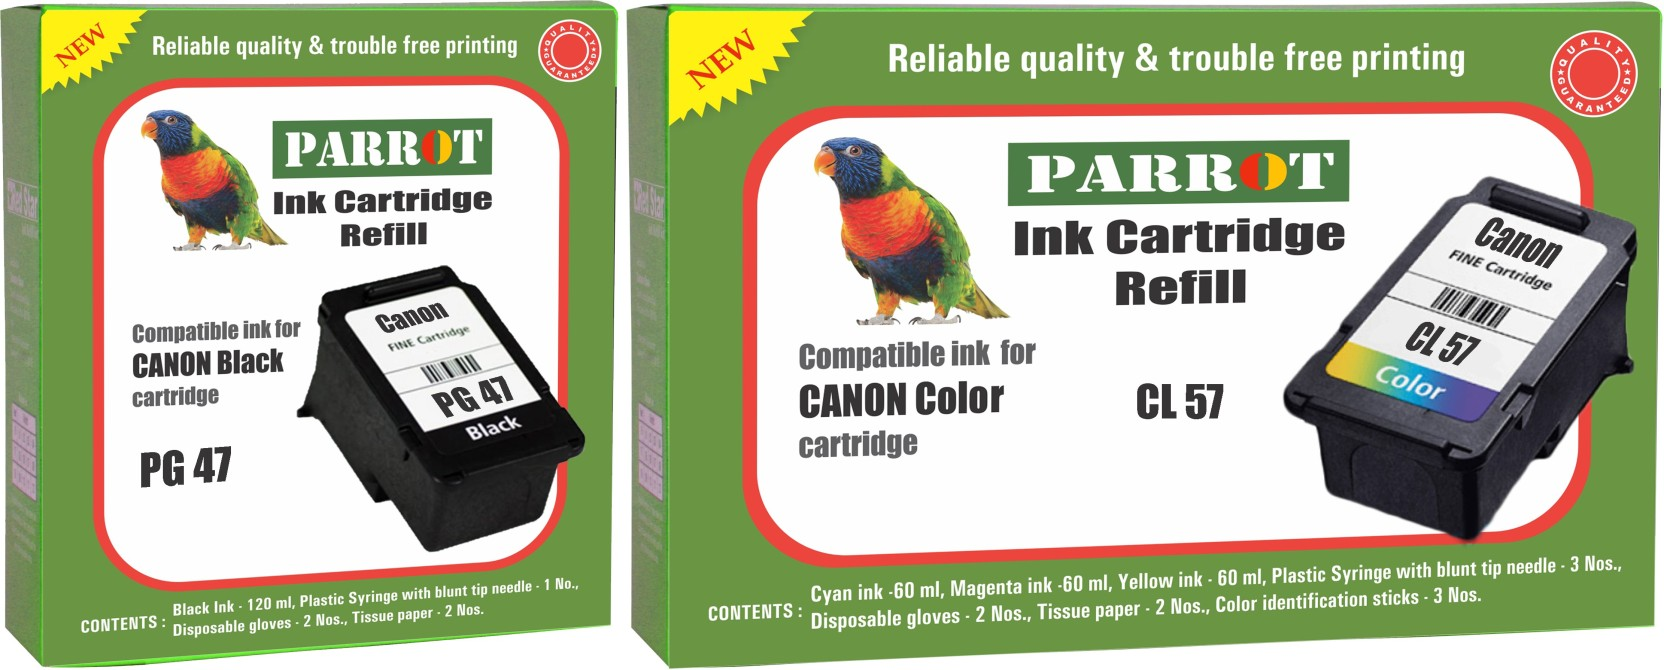 Parrot Ink Cartridge Refill For Canon Pg 47 Black And Cl 57 Original On Offer